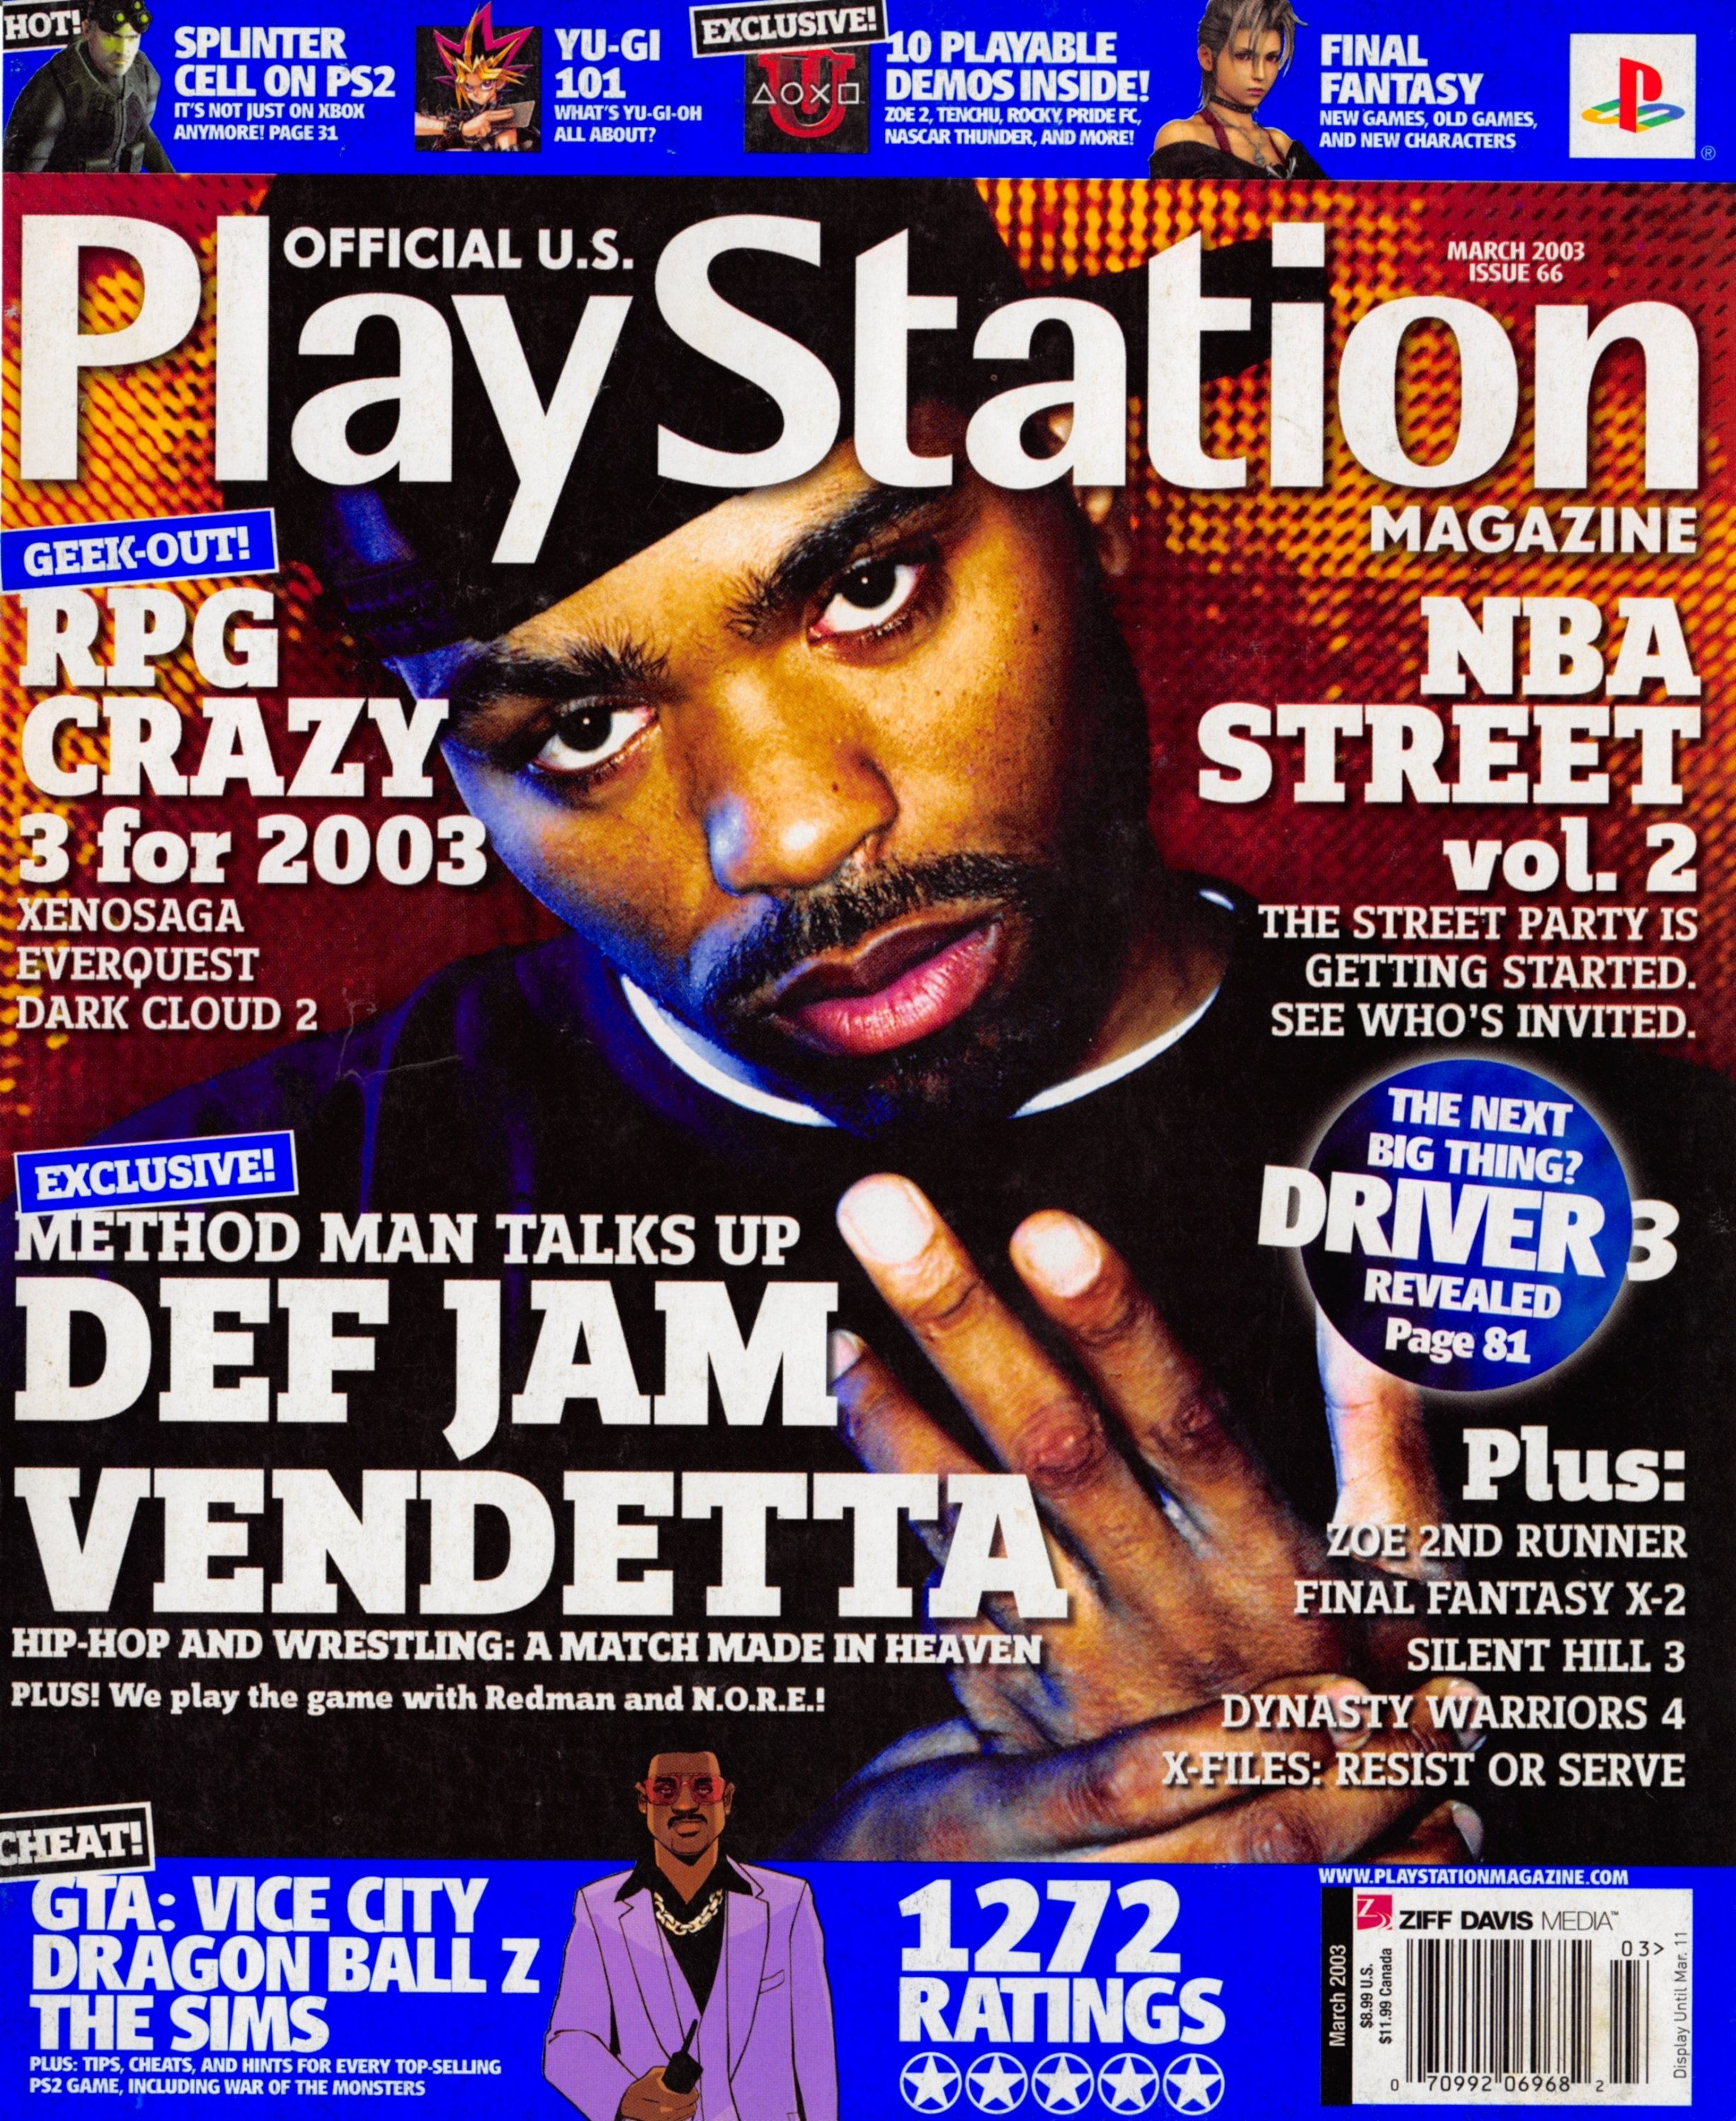 Official U.S. Playstation Magazine Issue 066 (March 2003)